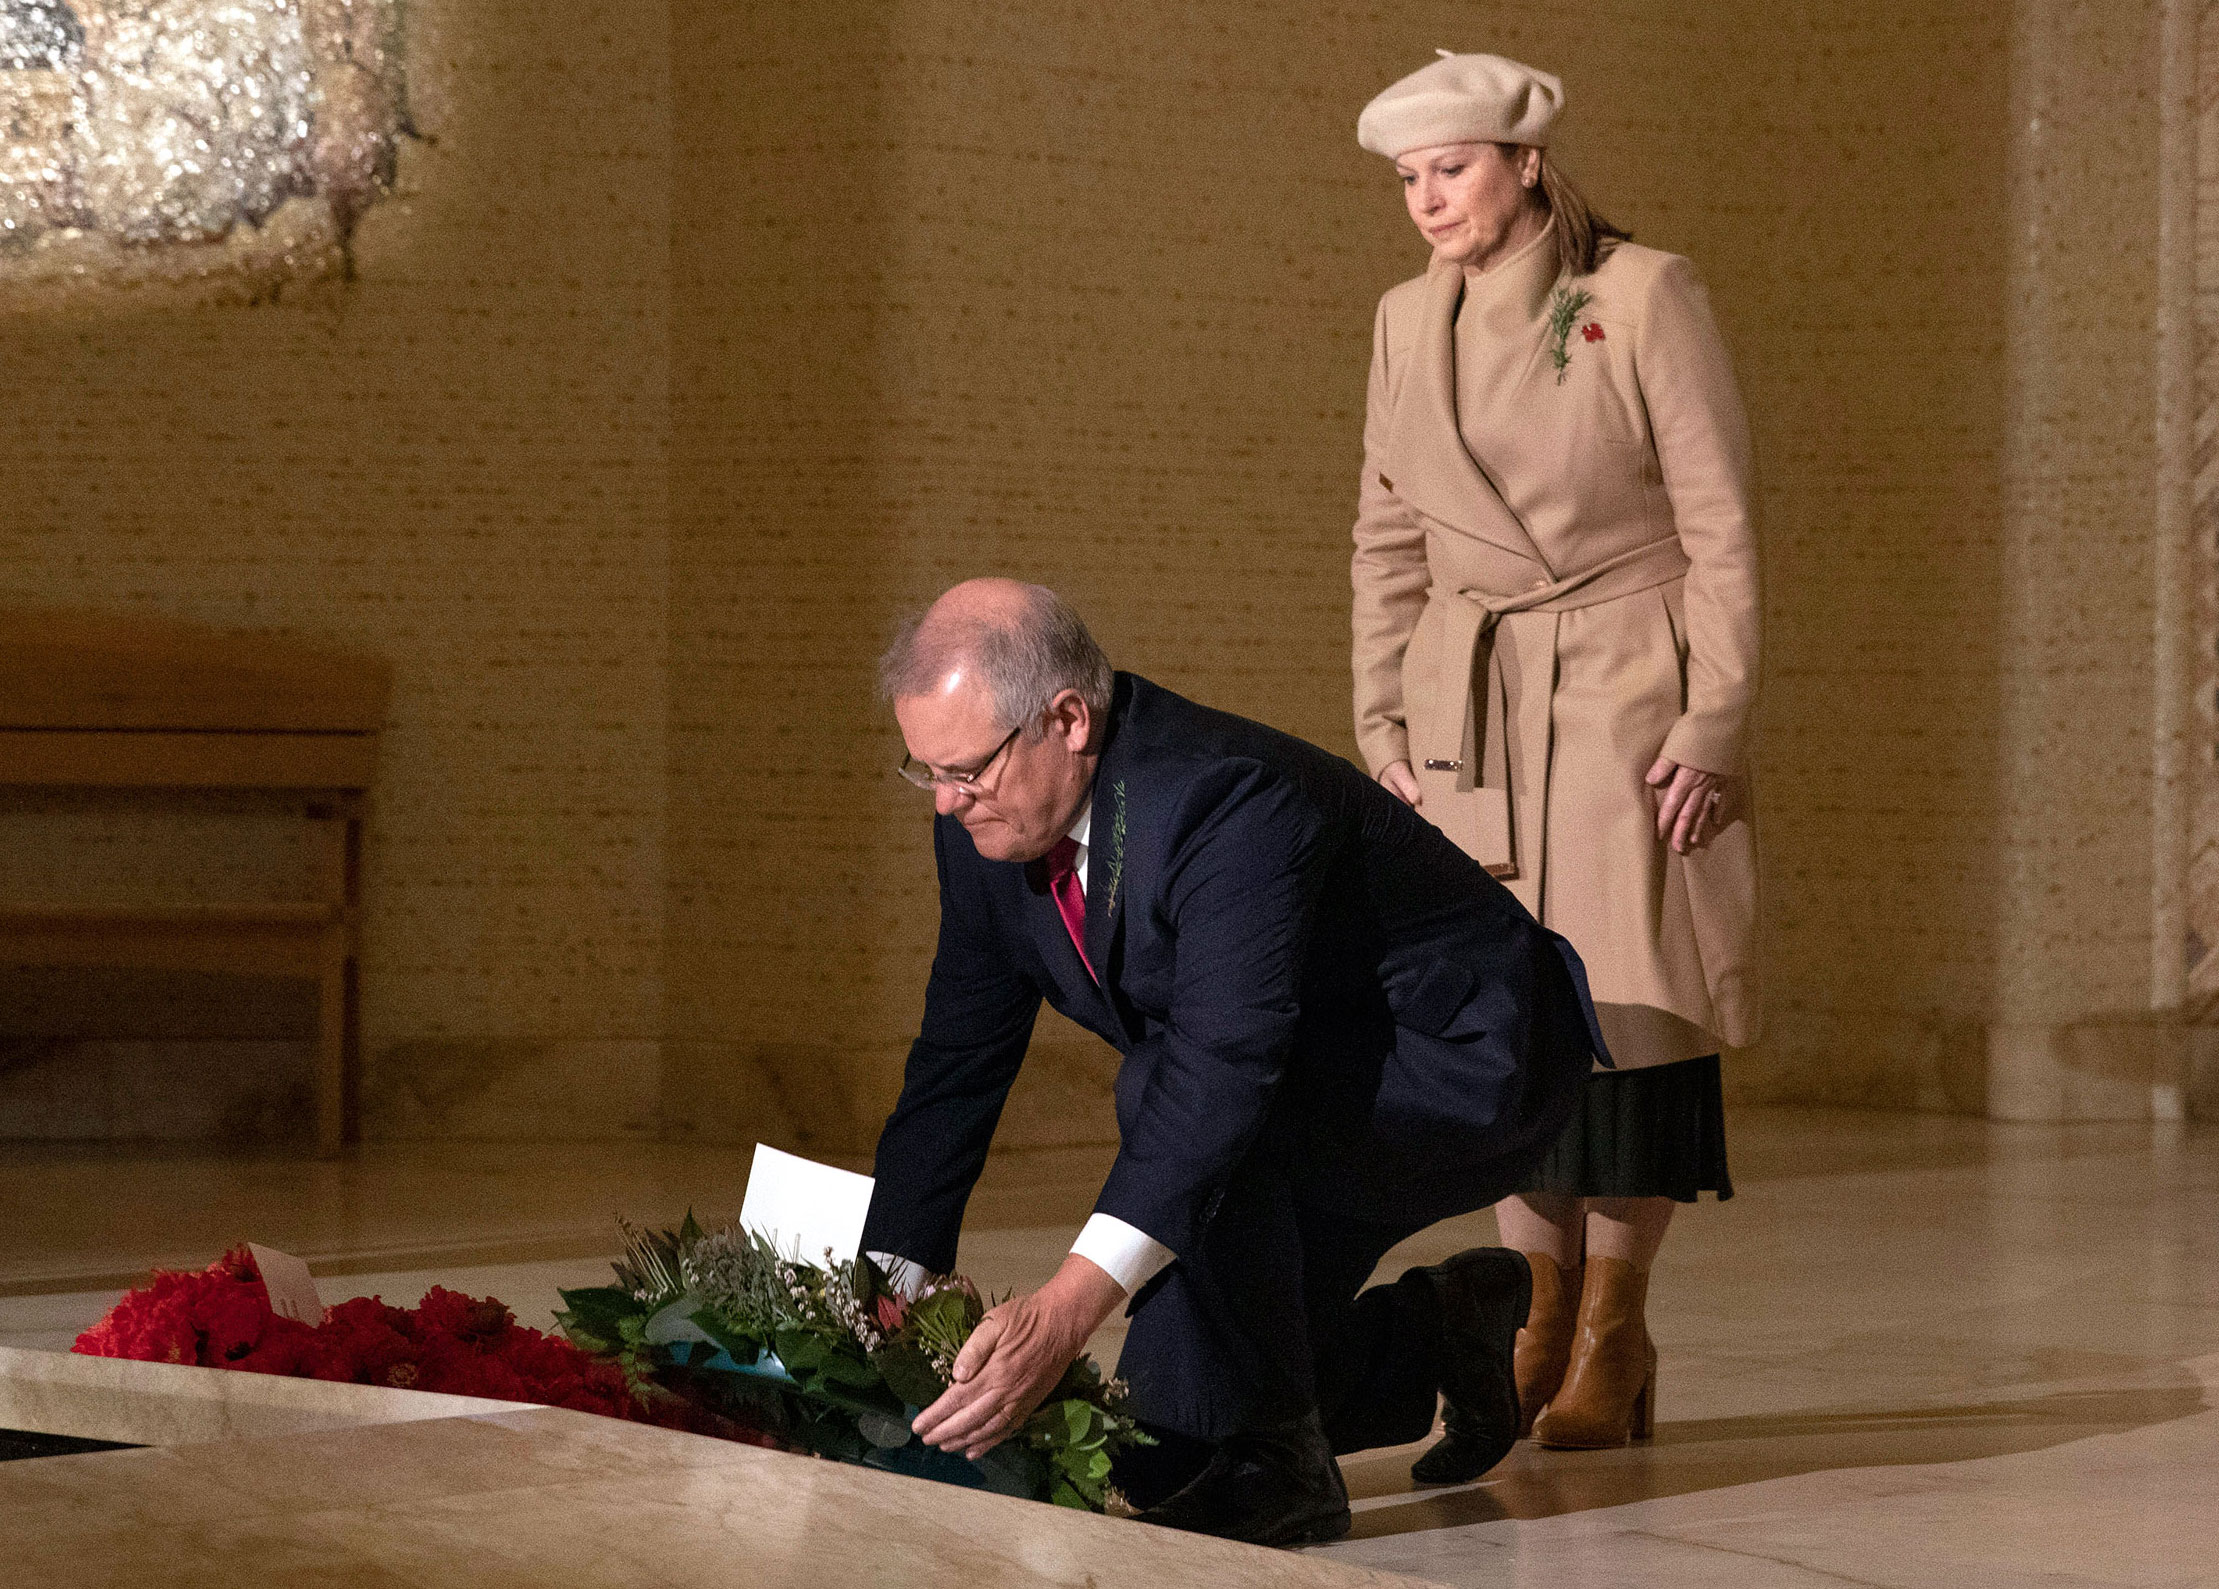 Australian Prime Minister Scott Morrison lays a wreath during an Anzac Day Commemorative Service at the Australian War Memorial in Canberra, Australia on April 25.